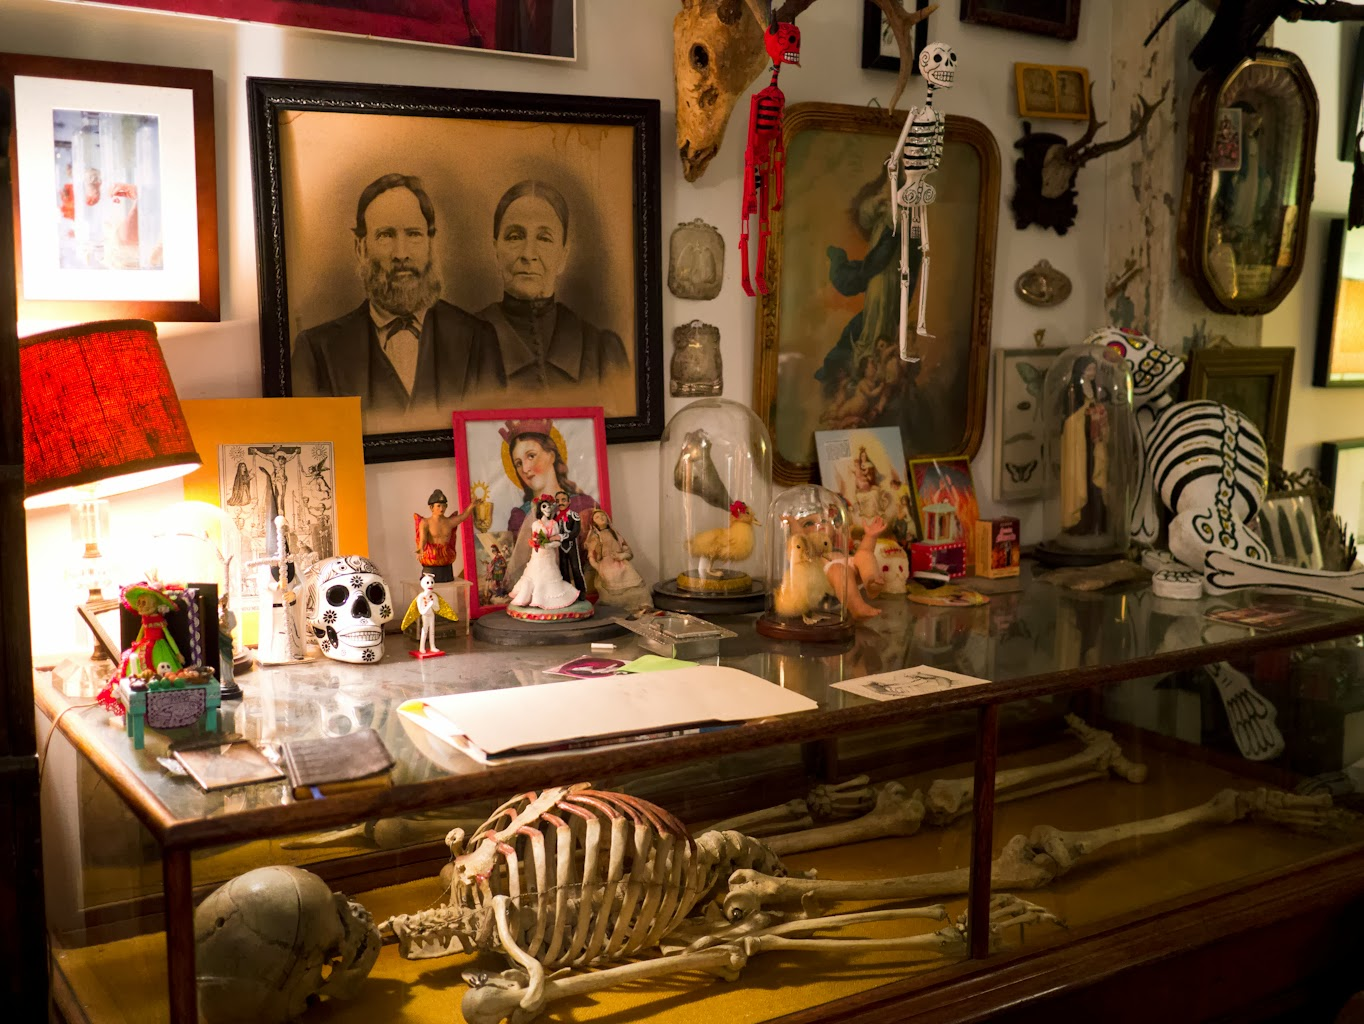 Morbid Anatomy: Support and Become Part of the Morbid Anatomy Museum ...